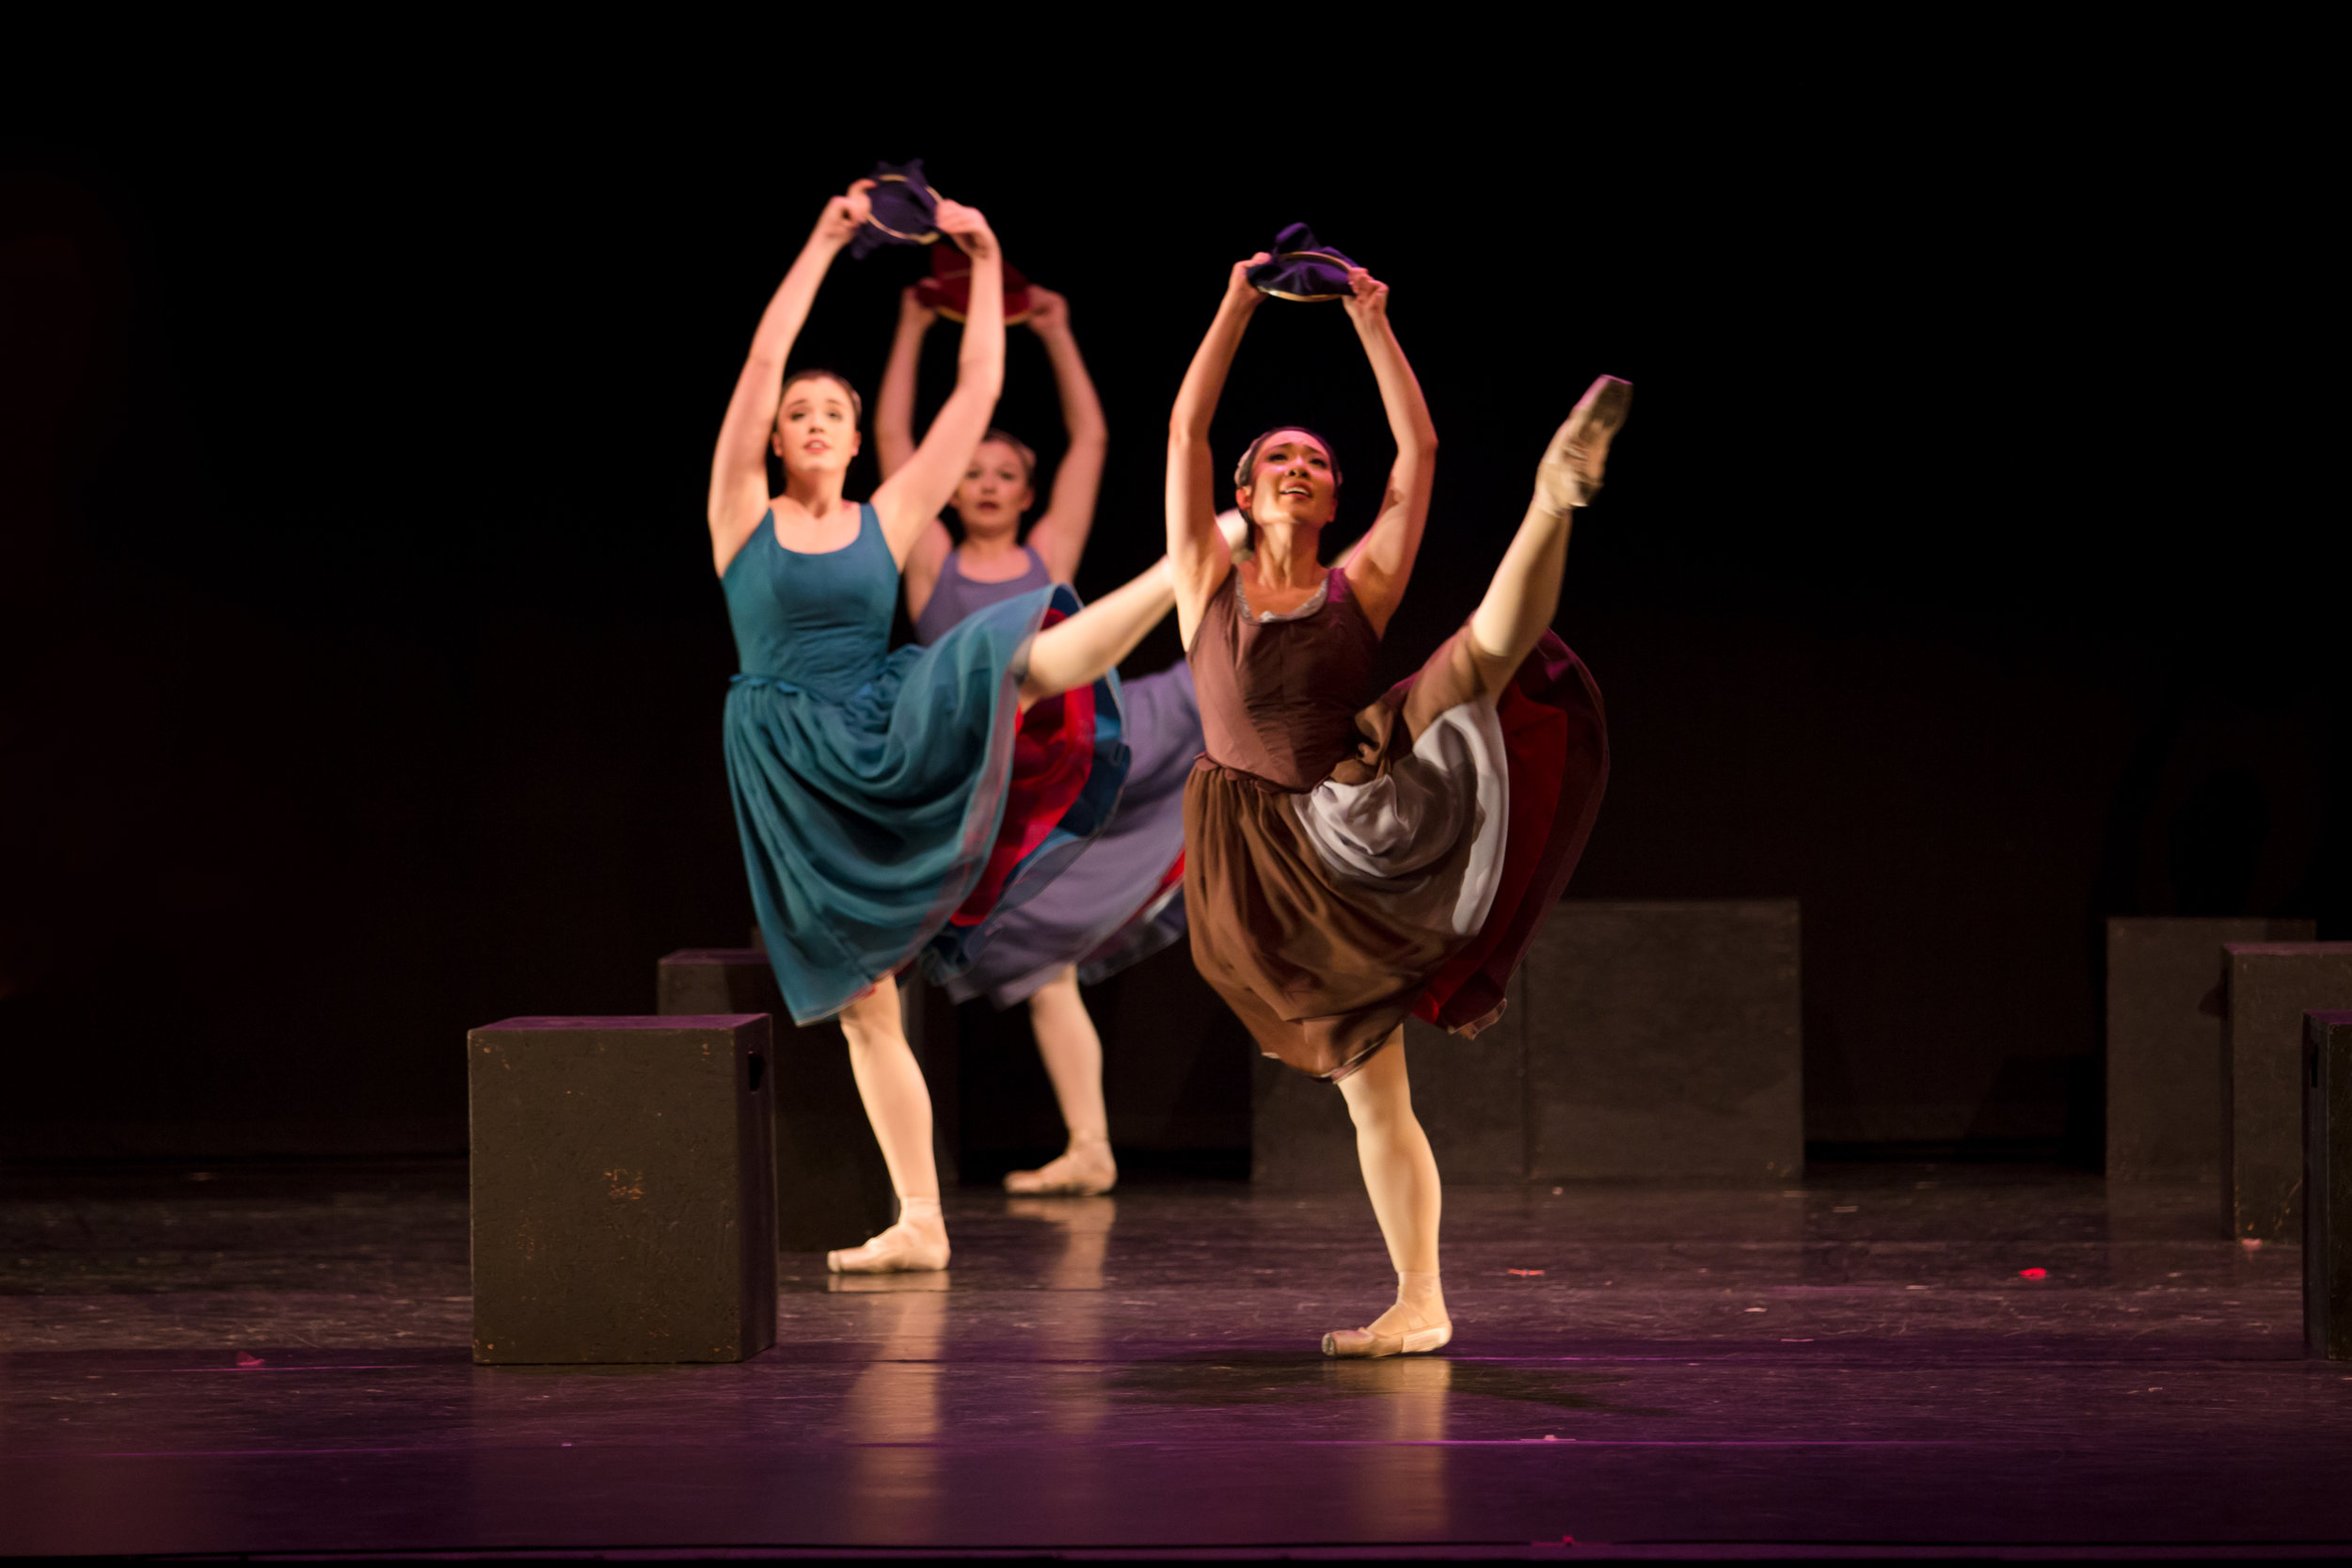 """Stephanie Joe (Silence) and Artists of the Company in the Act II """"Sewing Dance"""" in  Scarlet ."""